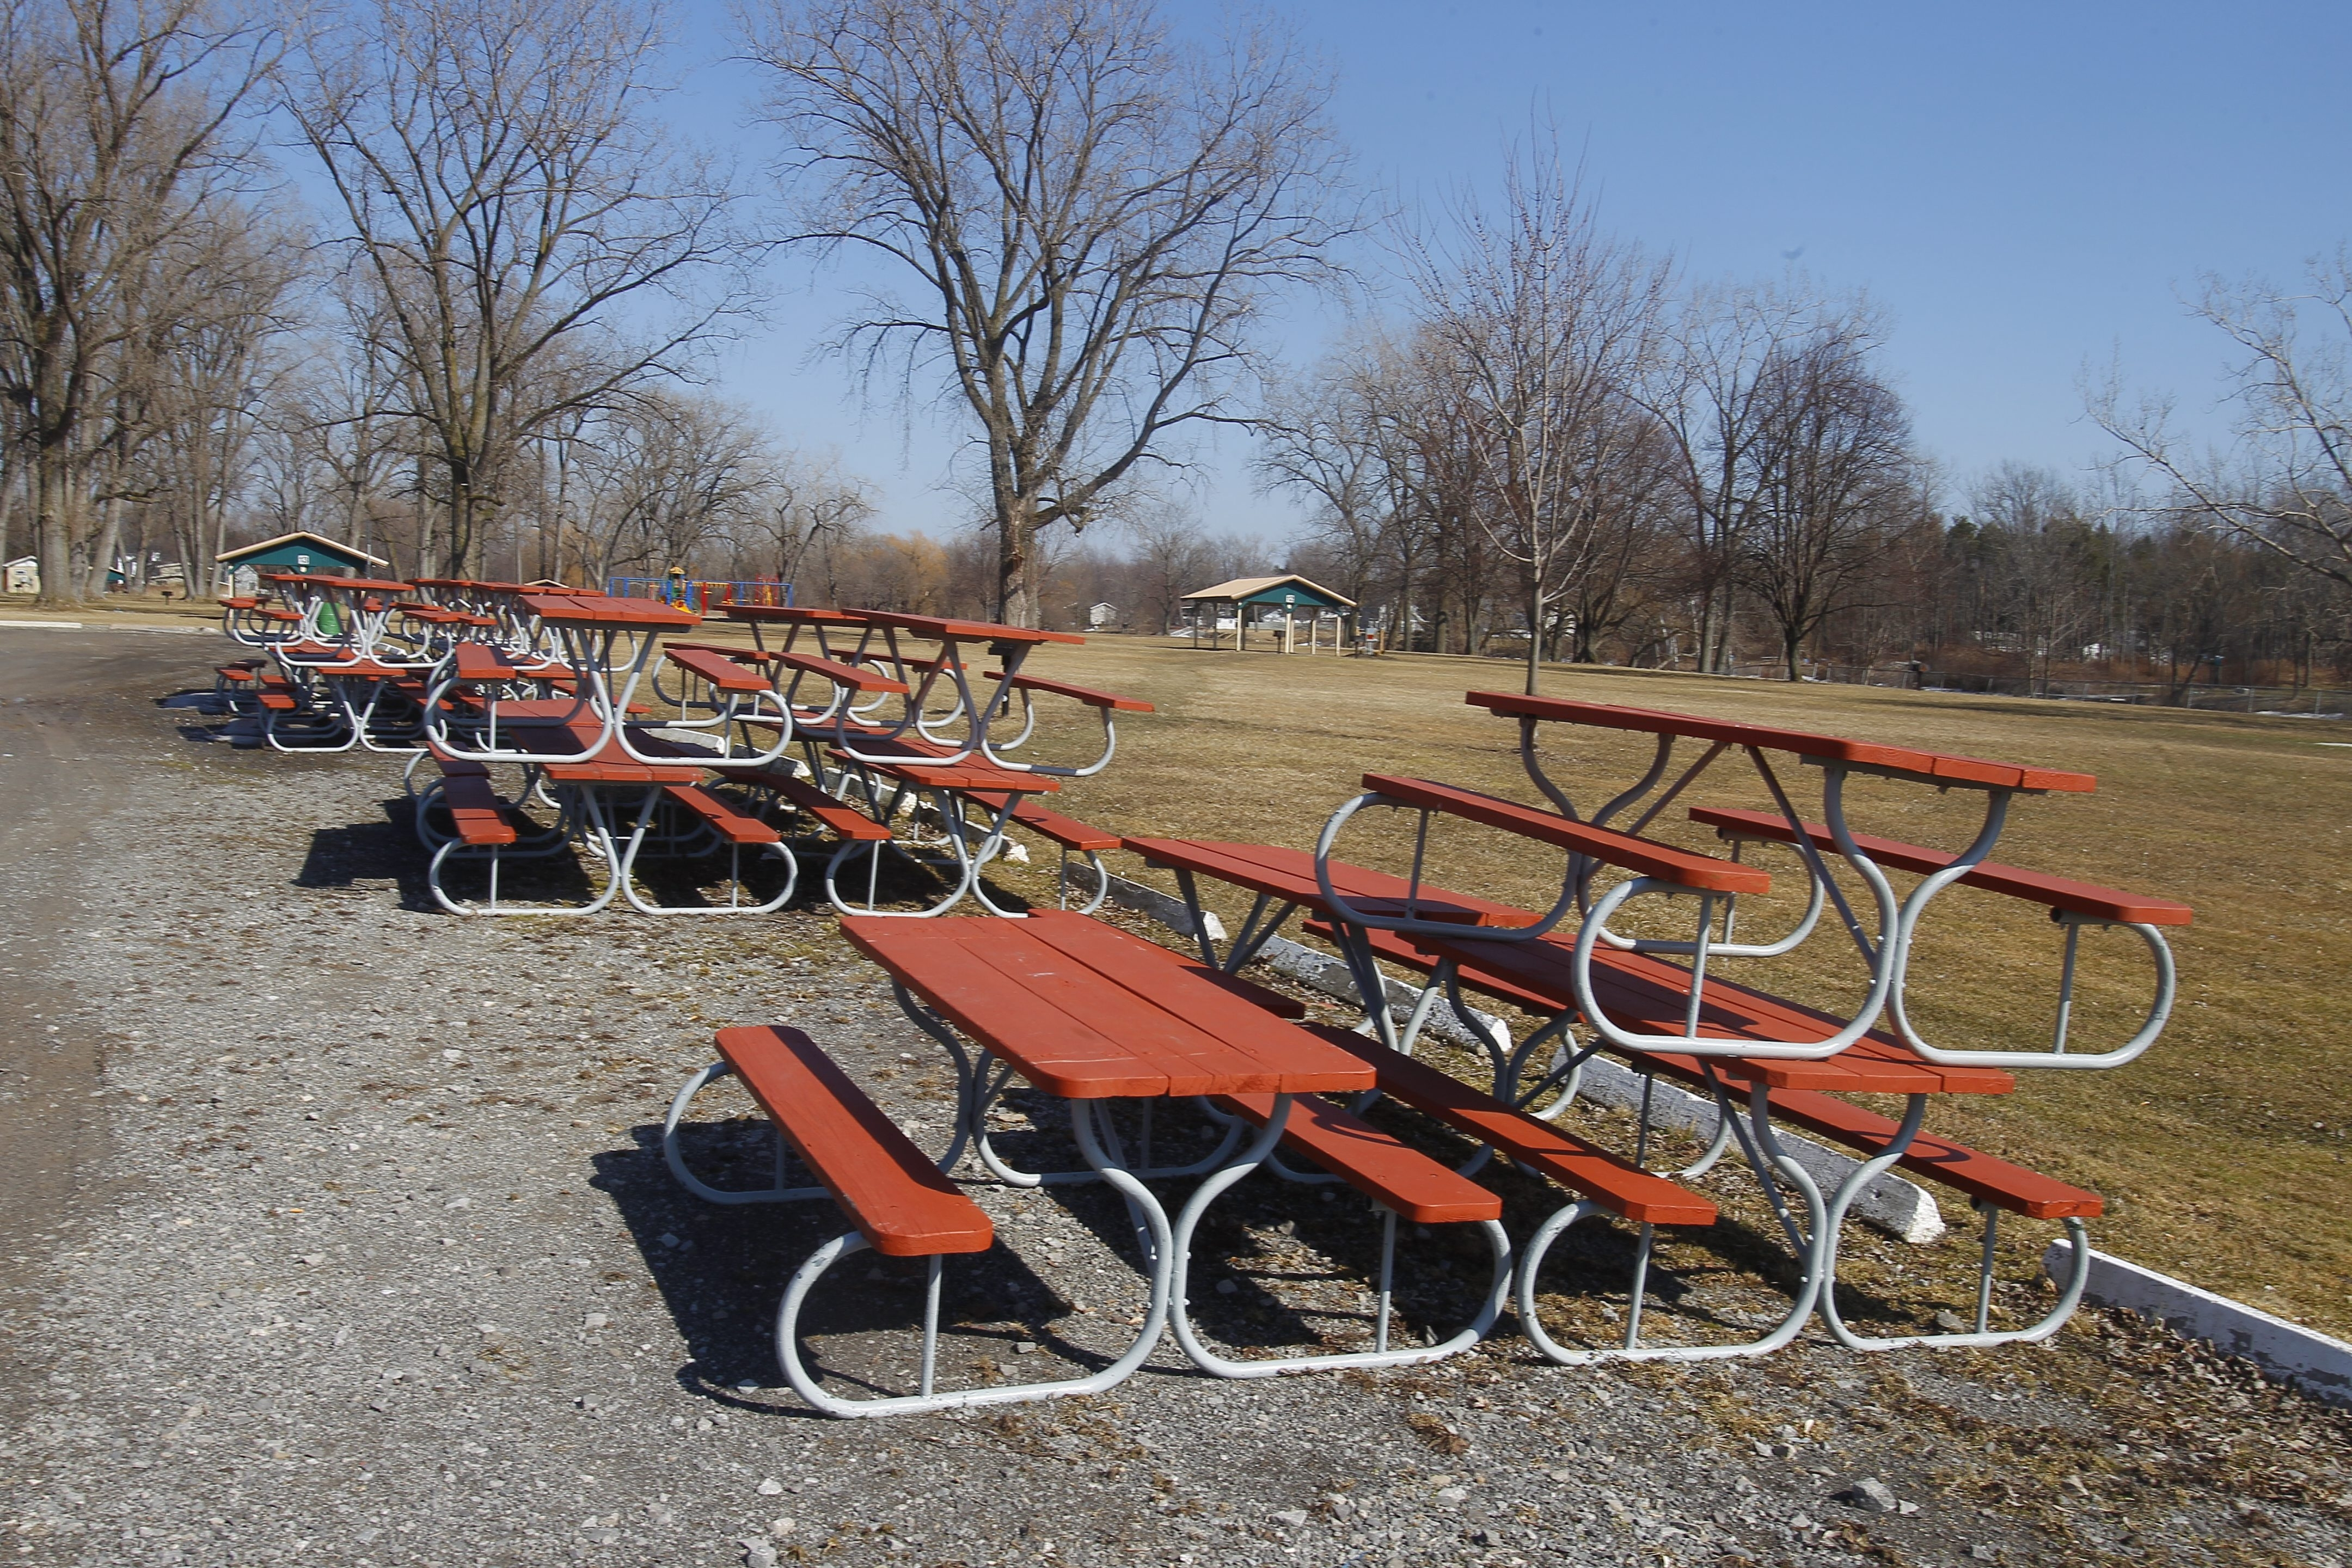 Stacked picnic benches outdoors on 46-degree day at West Canal Marina in North Tonawanda in early April. Conditions should improve in time for the many events.